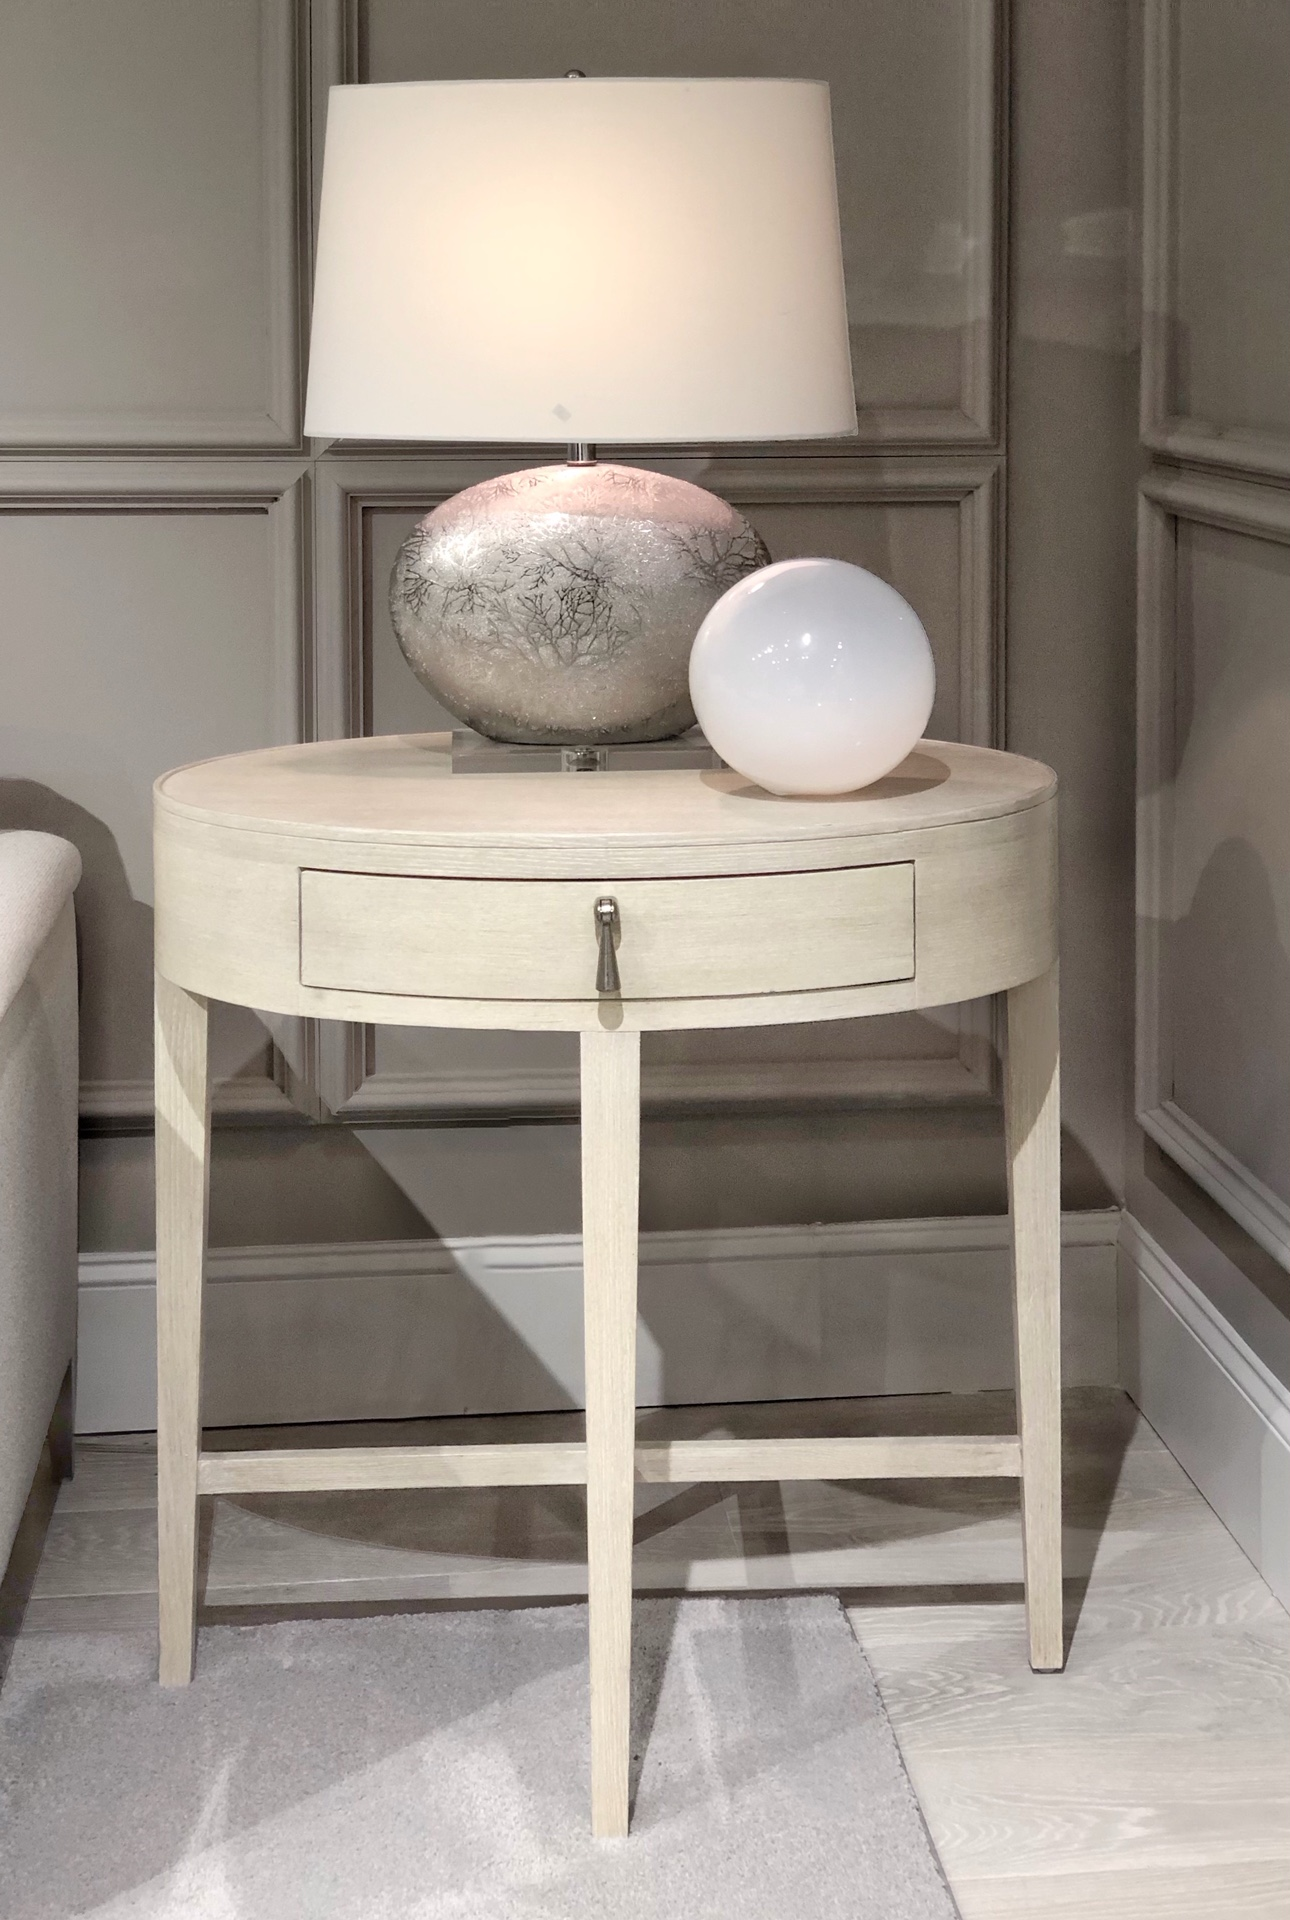 rounded end table design trend